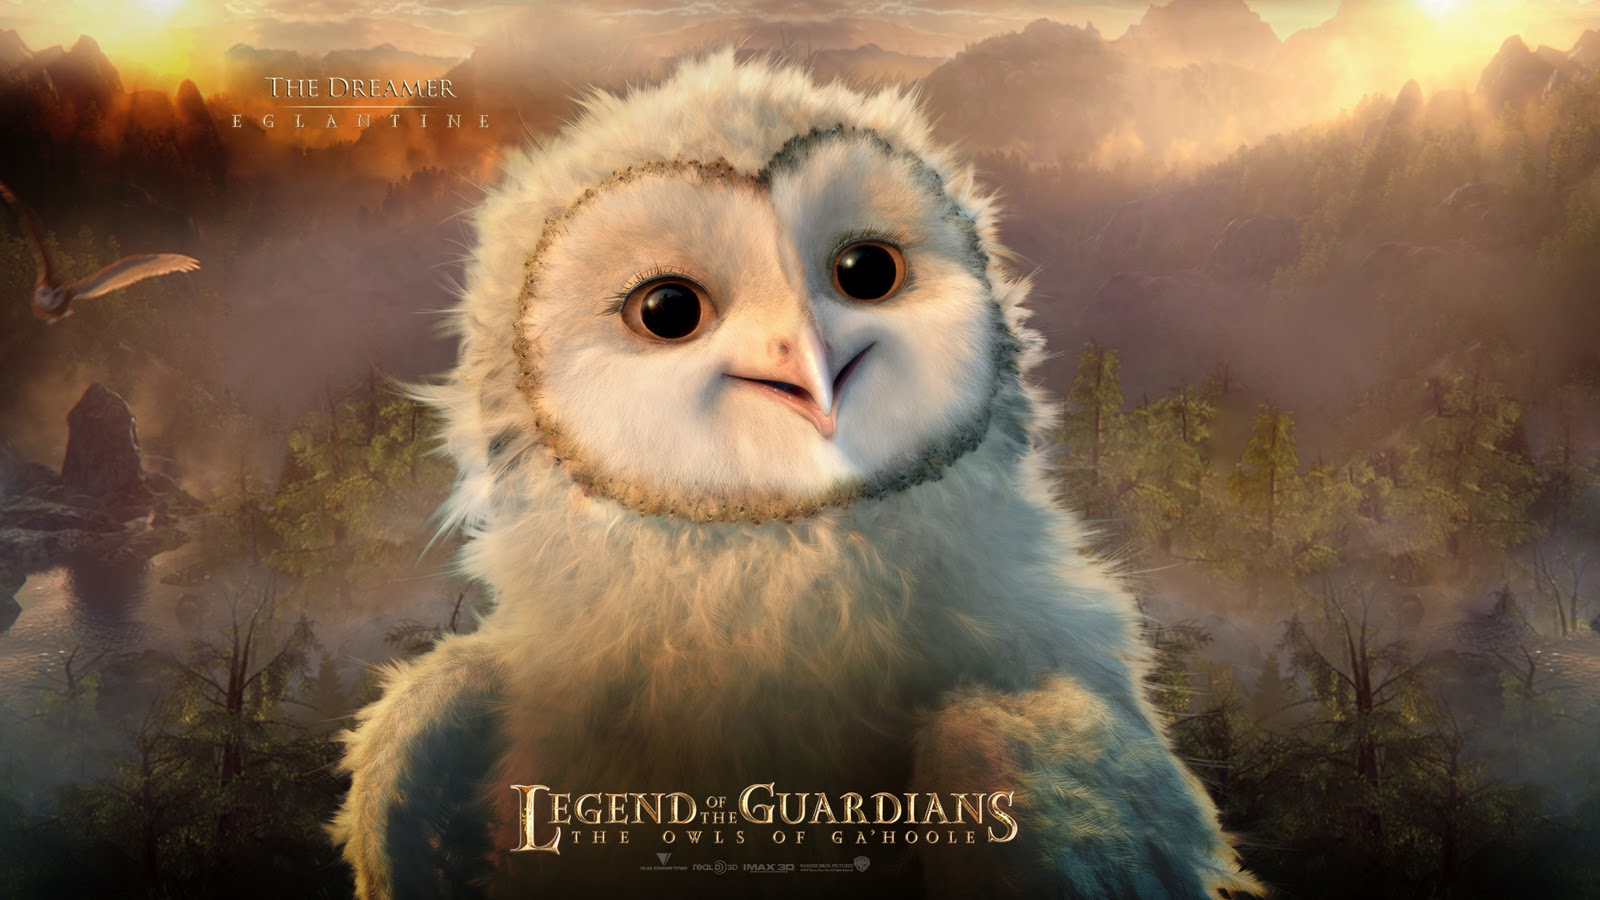 http://2.bp.blogspot.com/-JrdFNhOpGQQ/TWLGGIVAYpI/AAAAAAAAACw/kr6NzQv52K8/s1600/Adrienne_DeFaria_in_Legend_of_the_Guardians-_The_Owls_of_Ga_Hoole_Wallpaper_7_1024.jpg